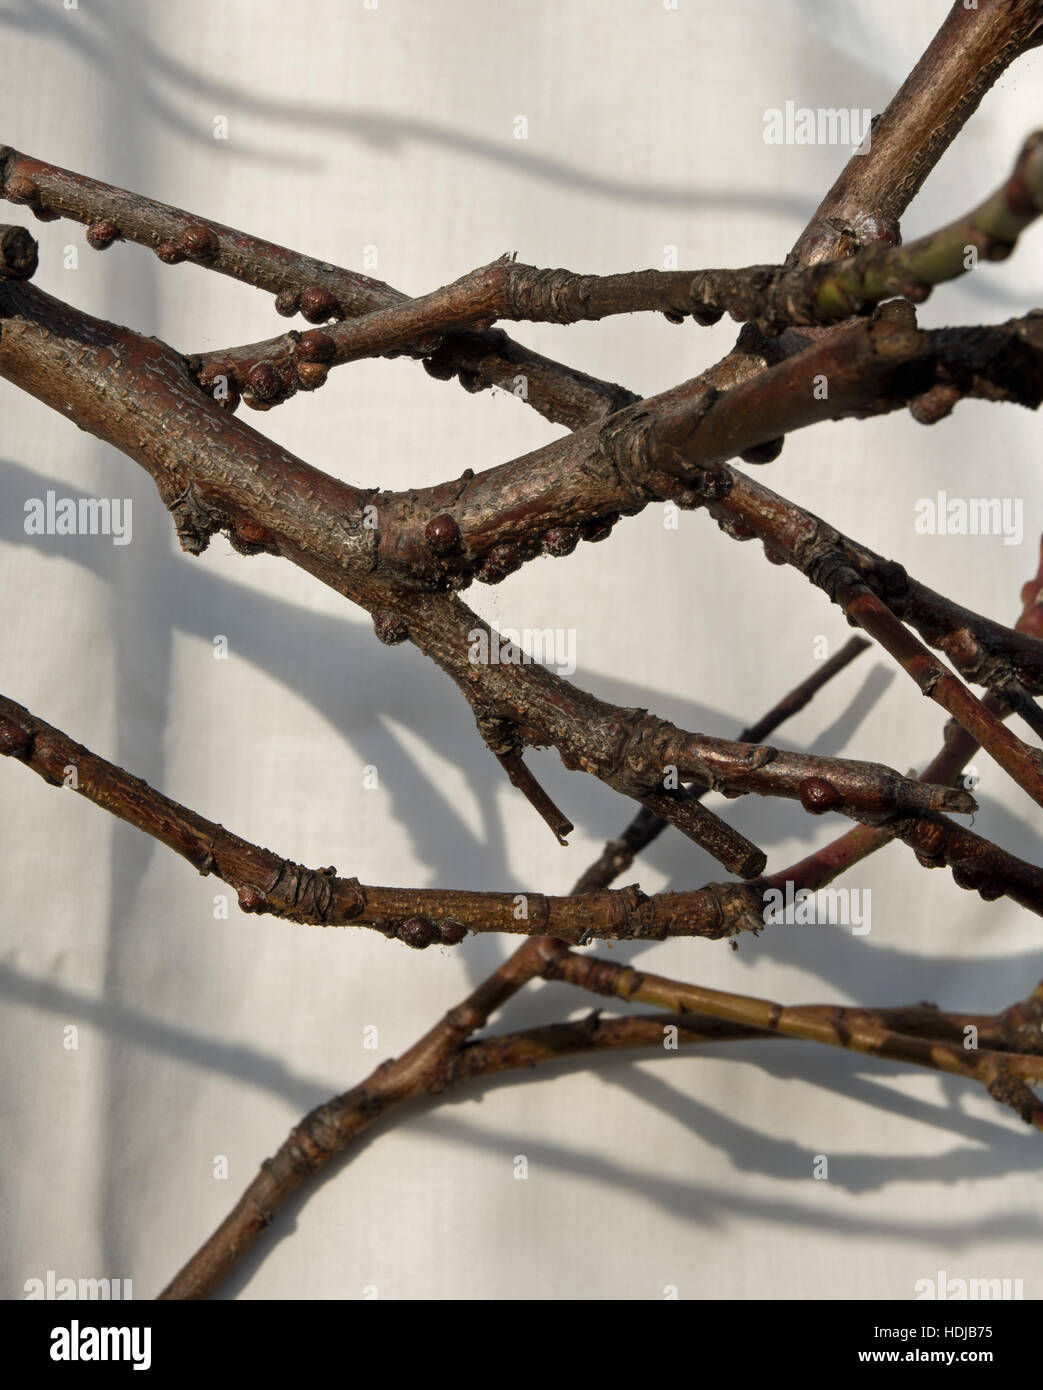 peach tree scale insect Stock Photo